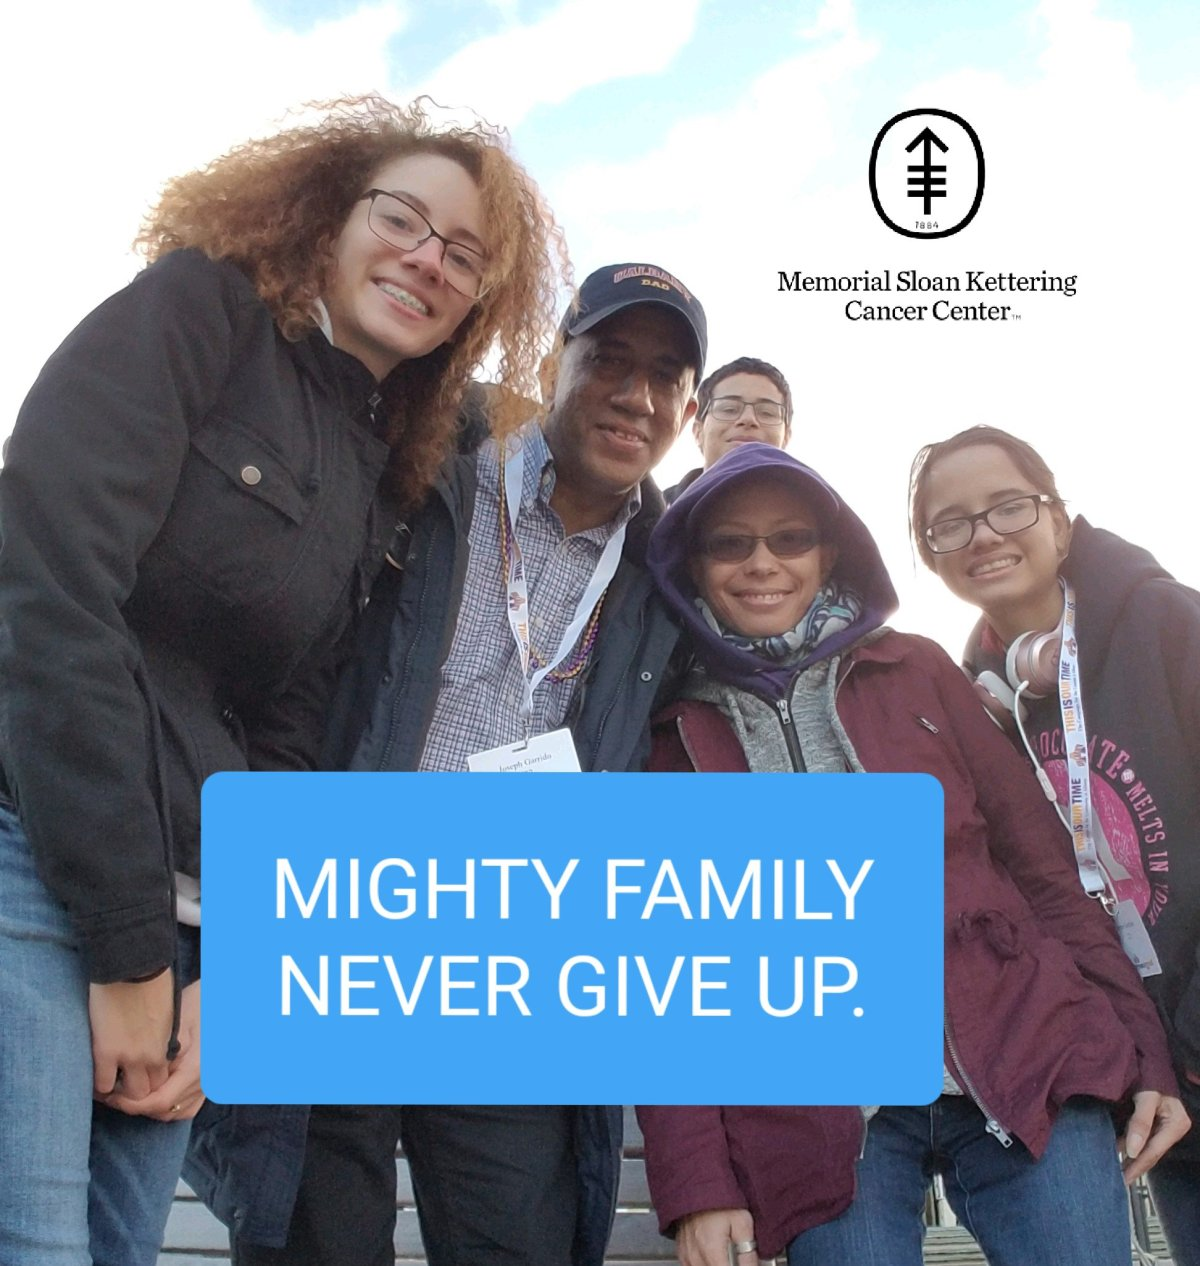 NEVER GIVE UP. MESOTHELIOMA WILL NOT BEAT US. WE ARE THE MIGHTY FAMILY.